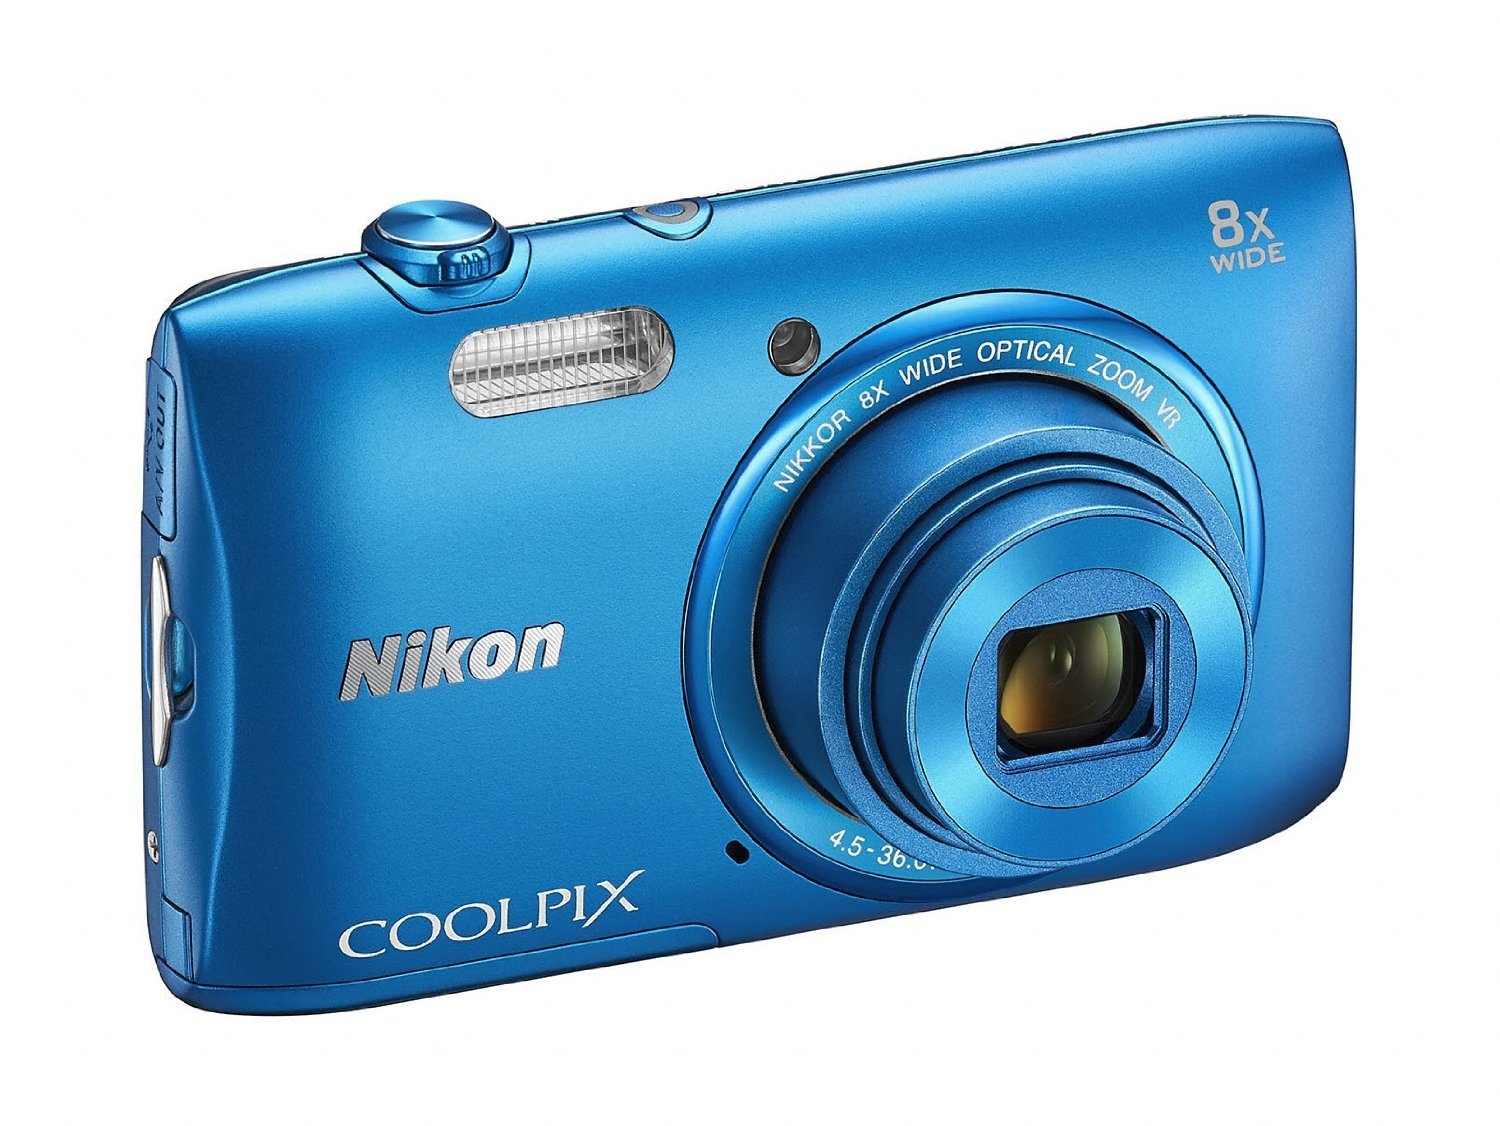 Nikon COOLPIX S3600 20.1 MP Digital Camera with 8x Zoom NIKKOR Lens and 720p HD Video (Blue) (Certified Refurbished)